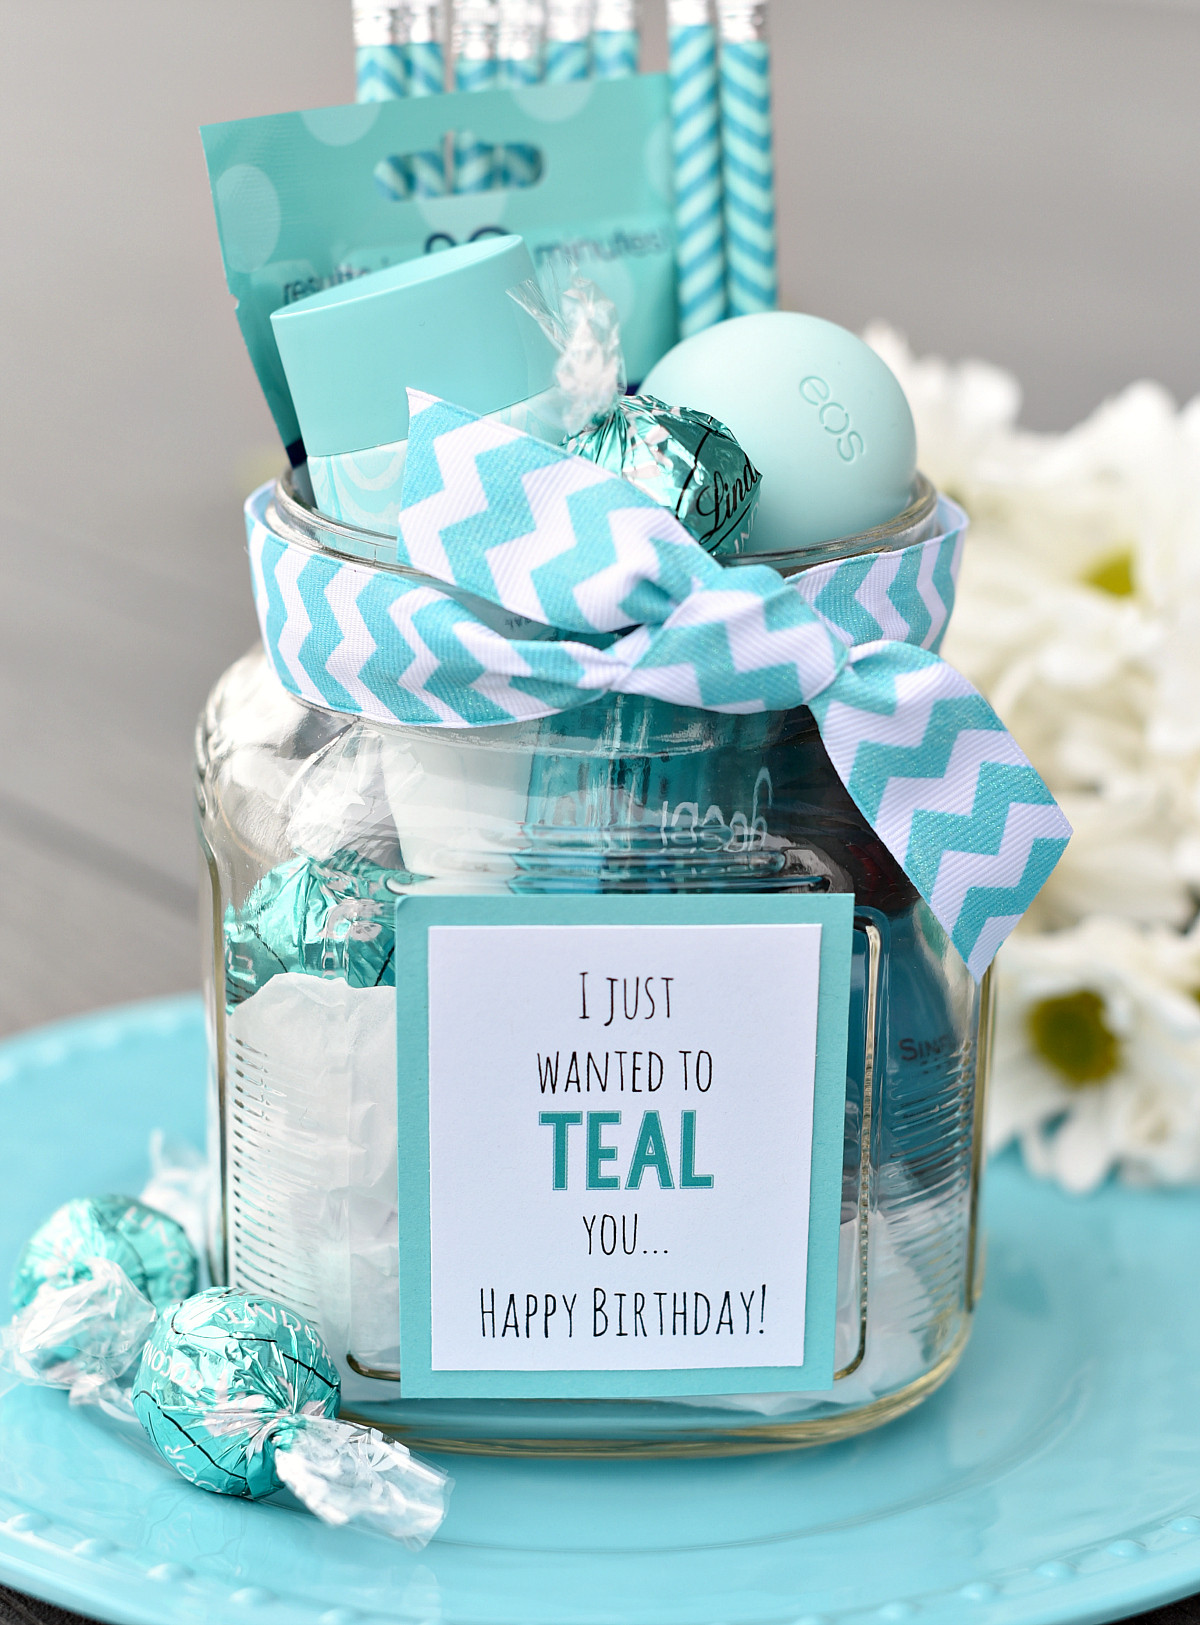 Gift Ideas For Friends Birthday Female  Teal Birthday Gift Idea for Friends – Fun Squared